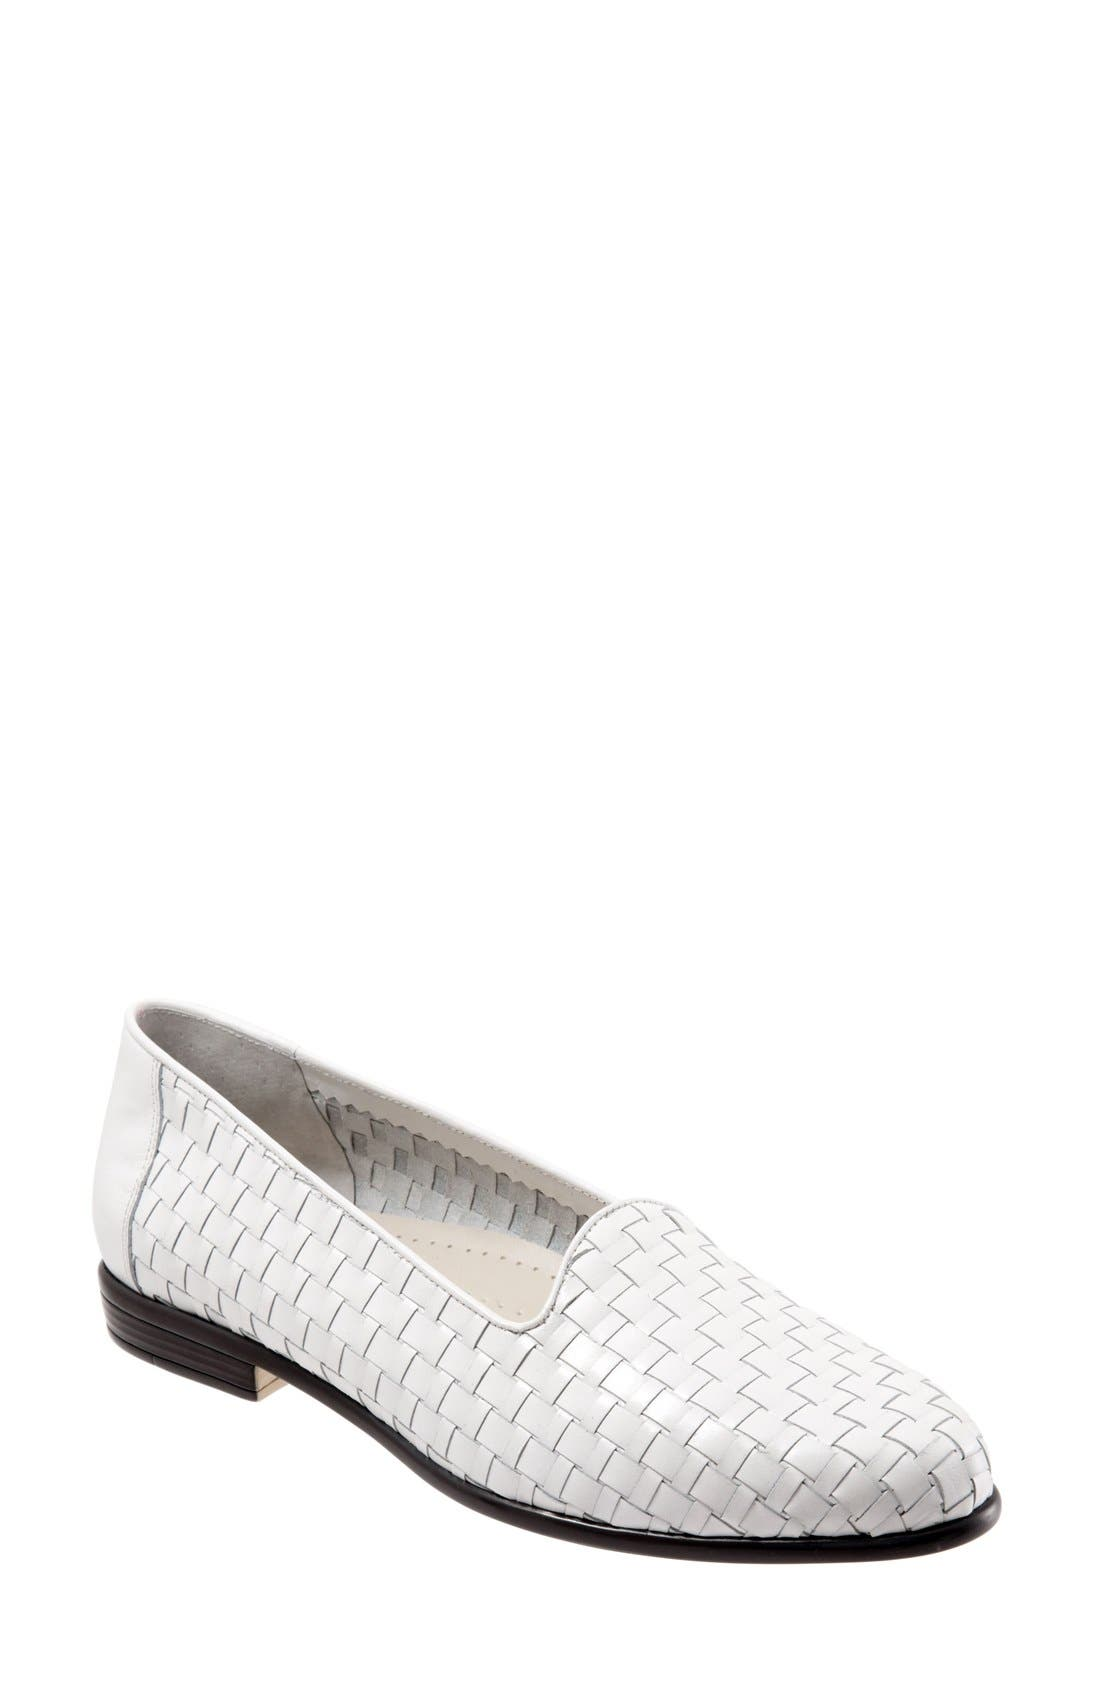 TROTTERS Slip-On, Main, color, WHITE